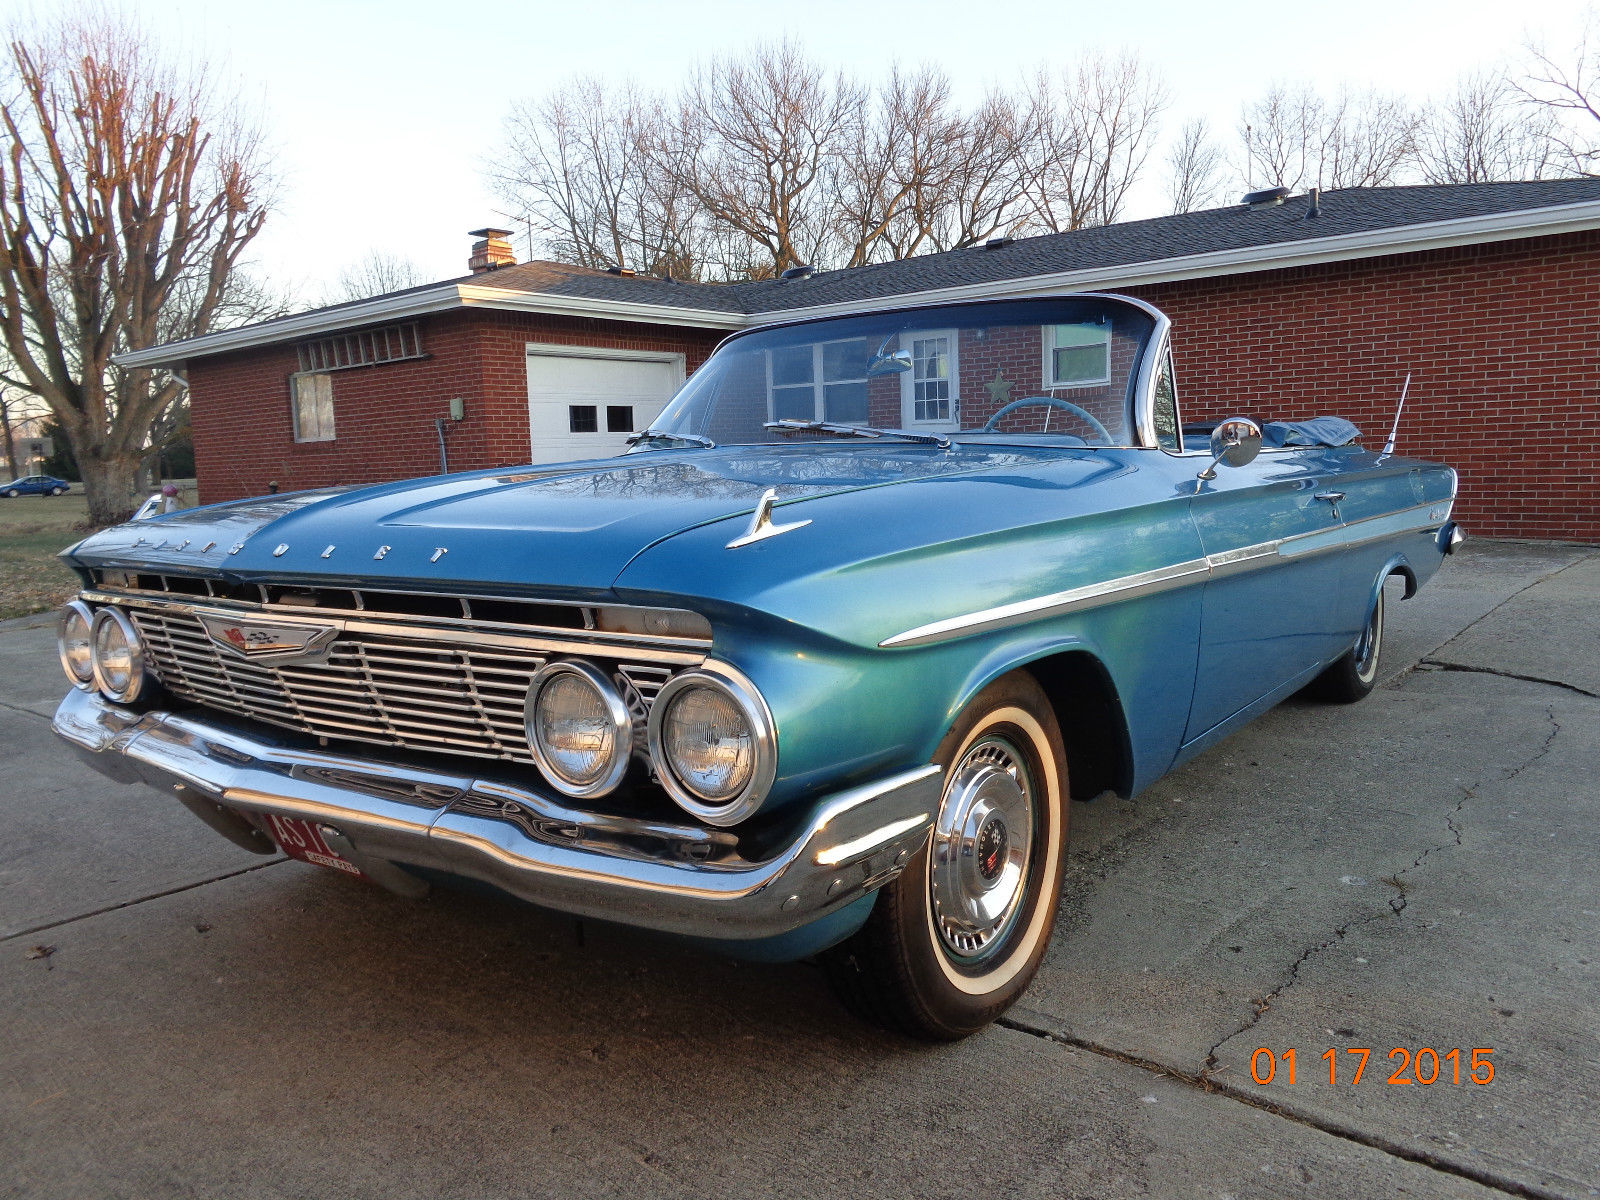 1961 Chevrolet Impala Convertible Restored